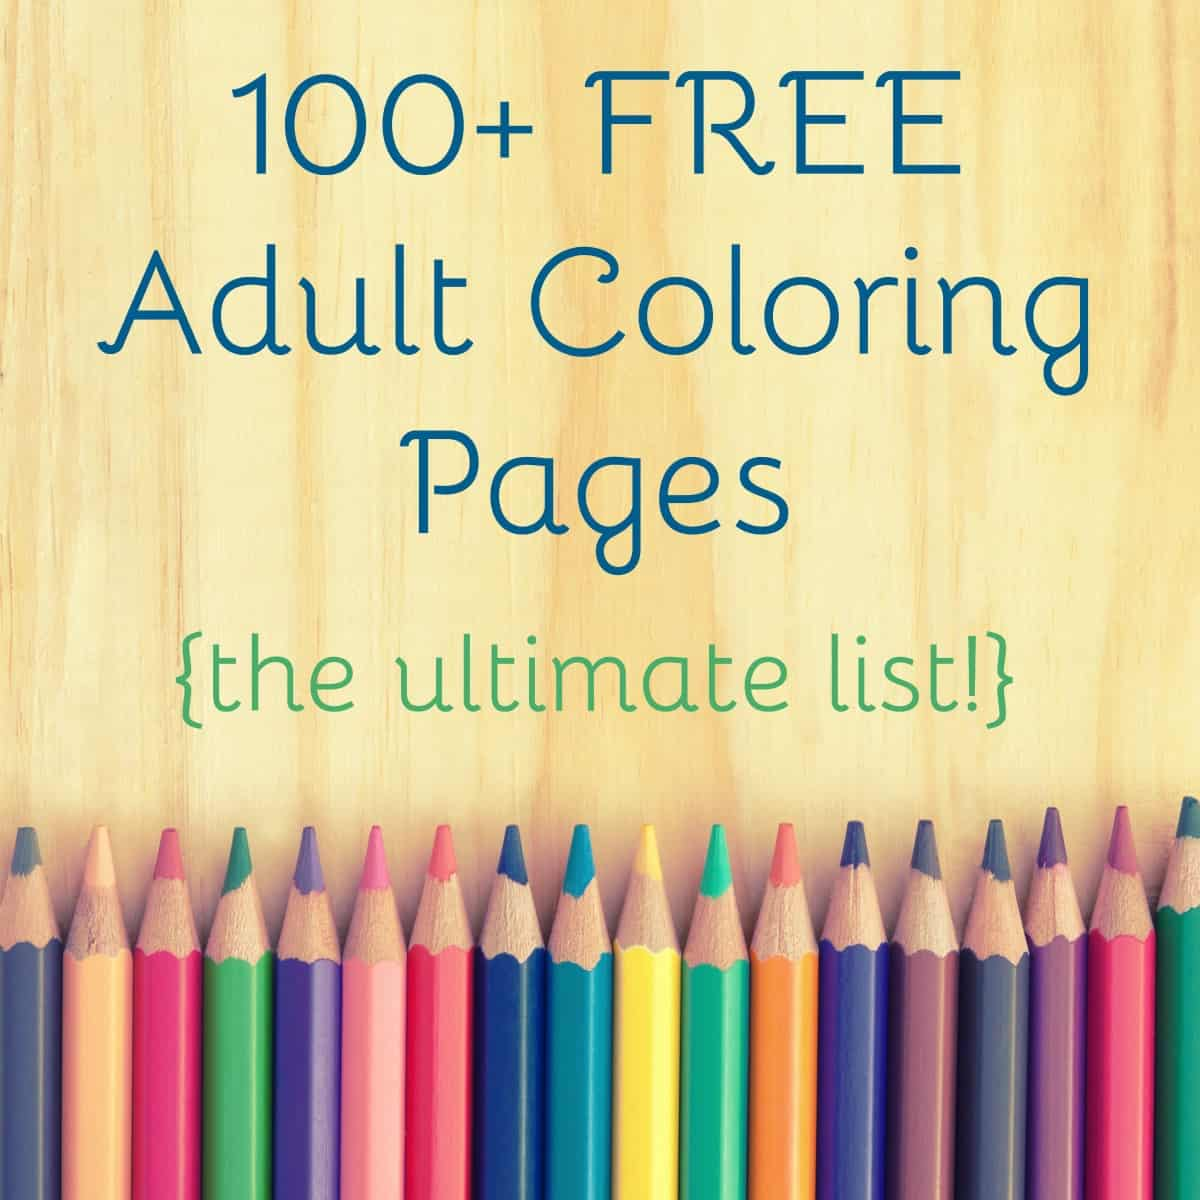 Coloring pages for adults for free - Get Links To Over 100 Free Coloring Pages You Ll Love These Favorites Including